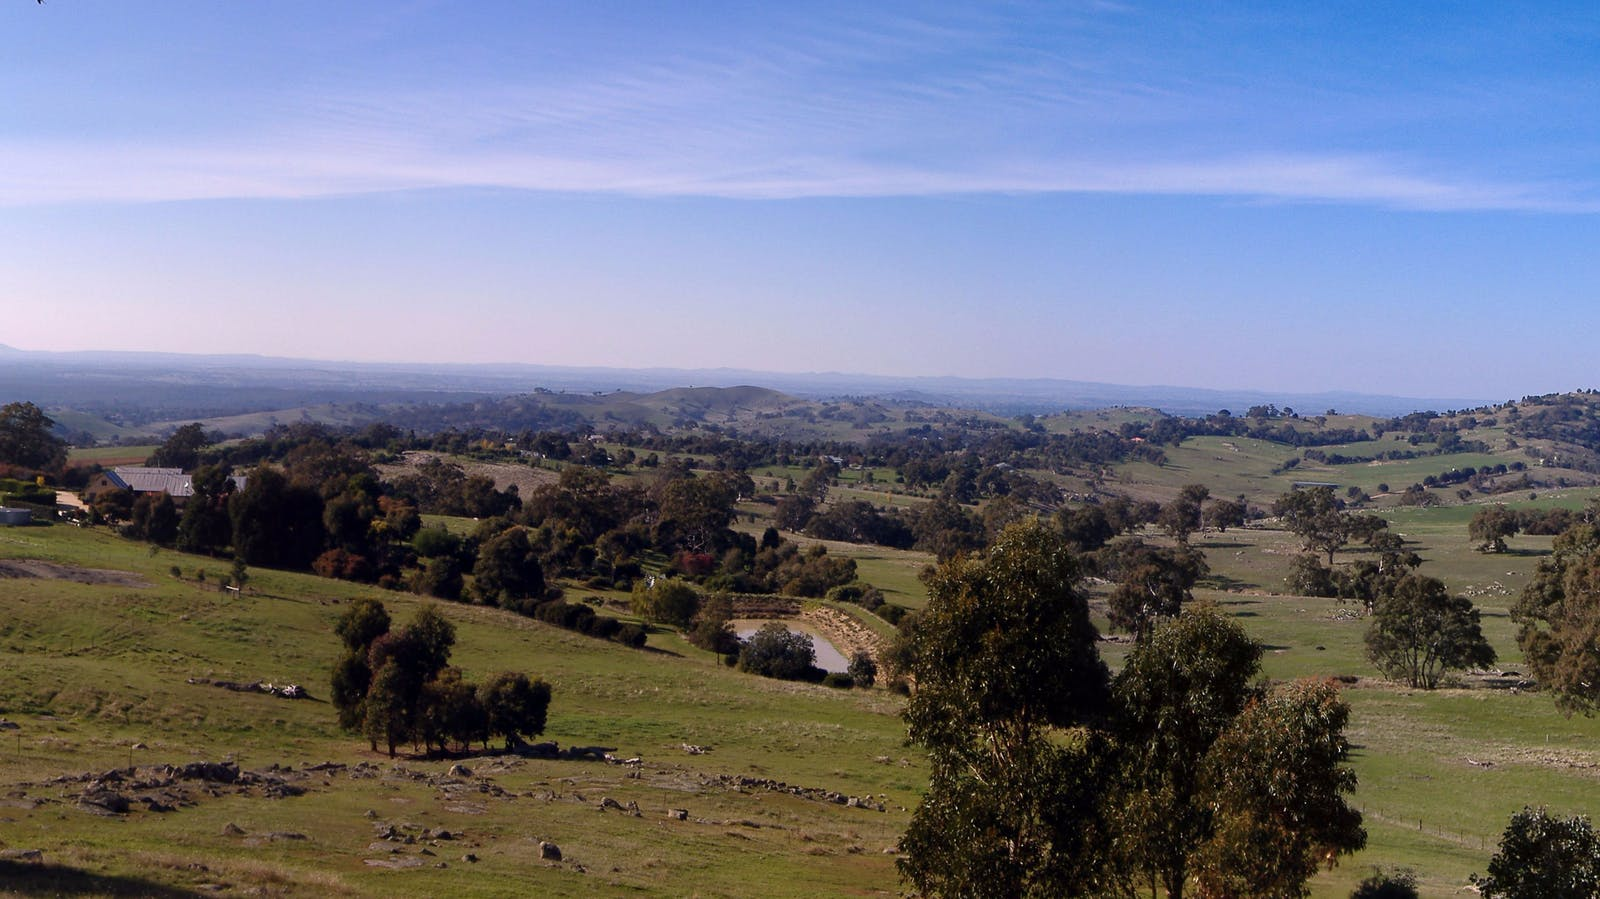 Panorama from the Lookout